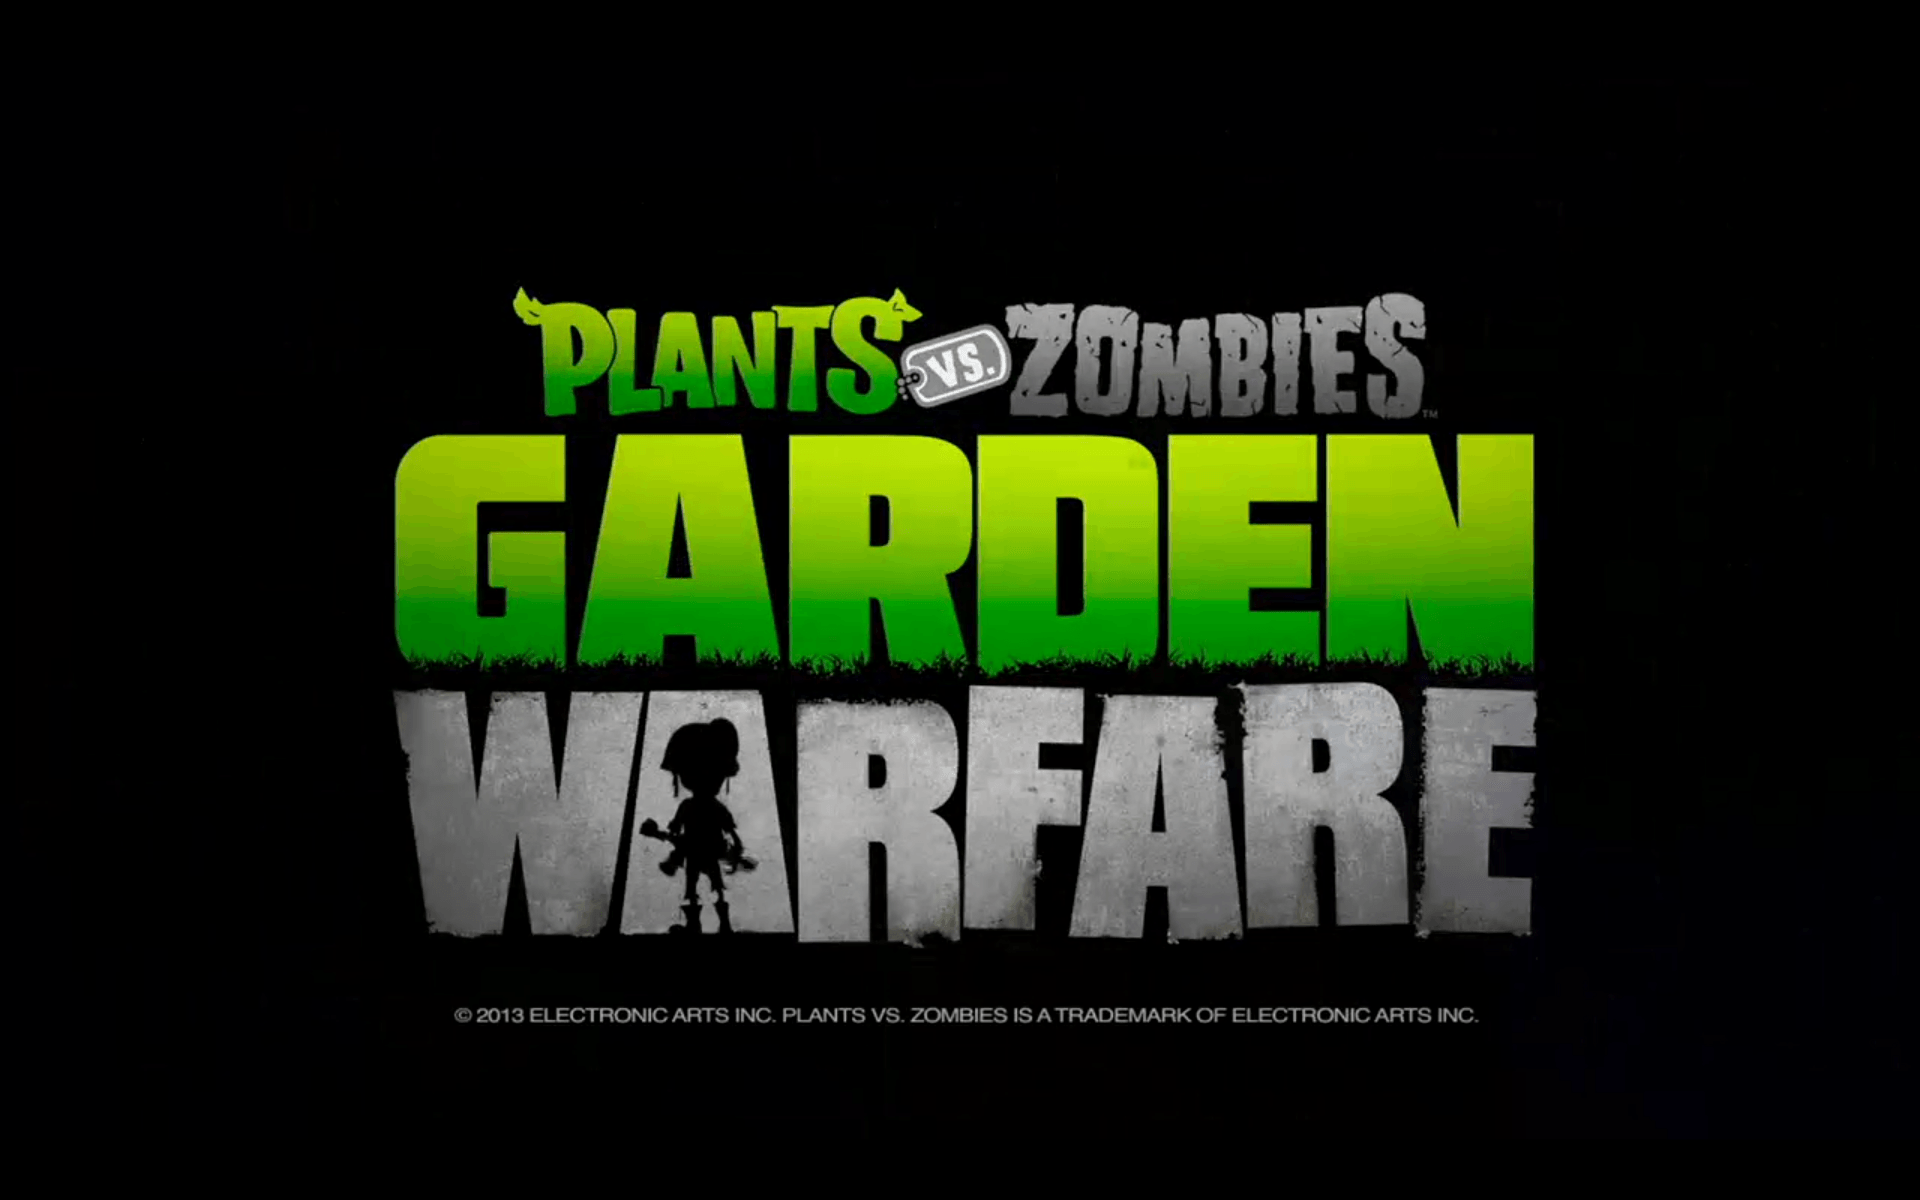 Plants vs. Zombies 2014 New Garden Warfare « Game Wallpaper HDGame ...